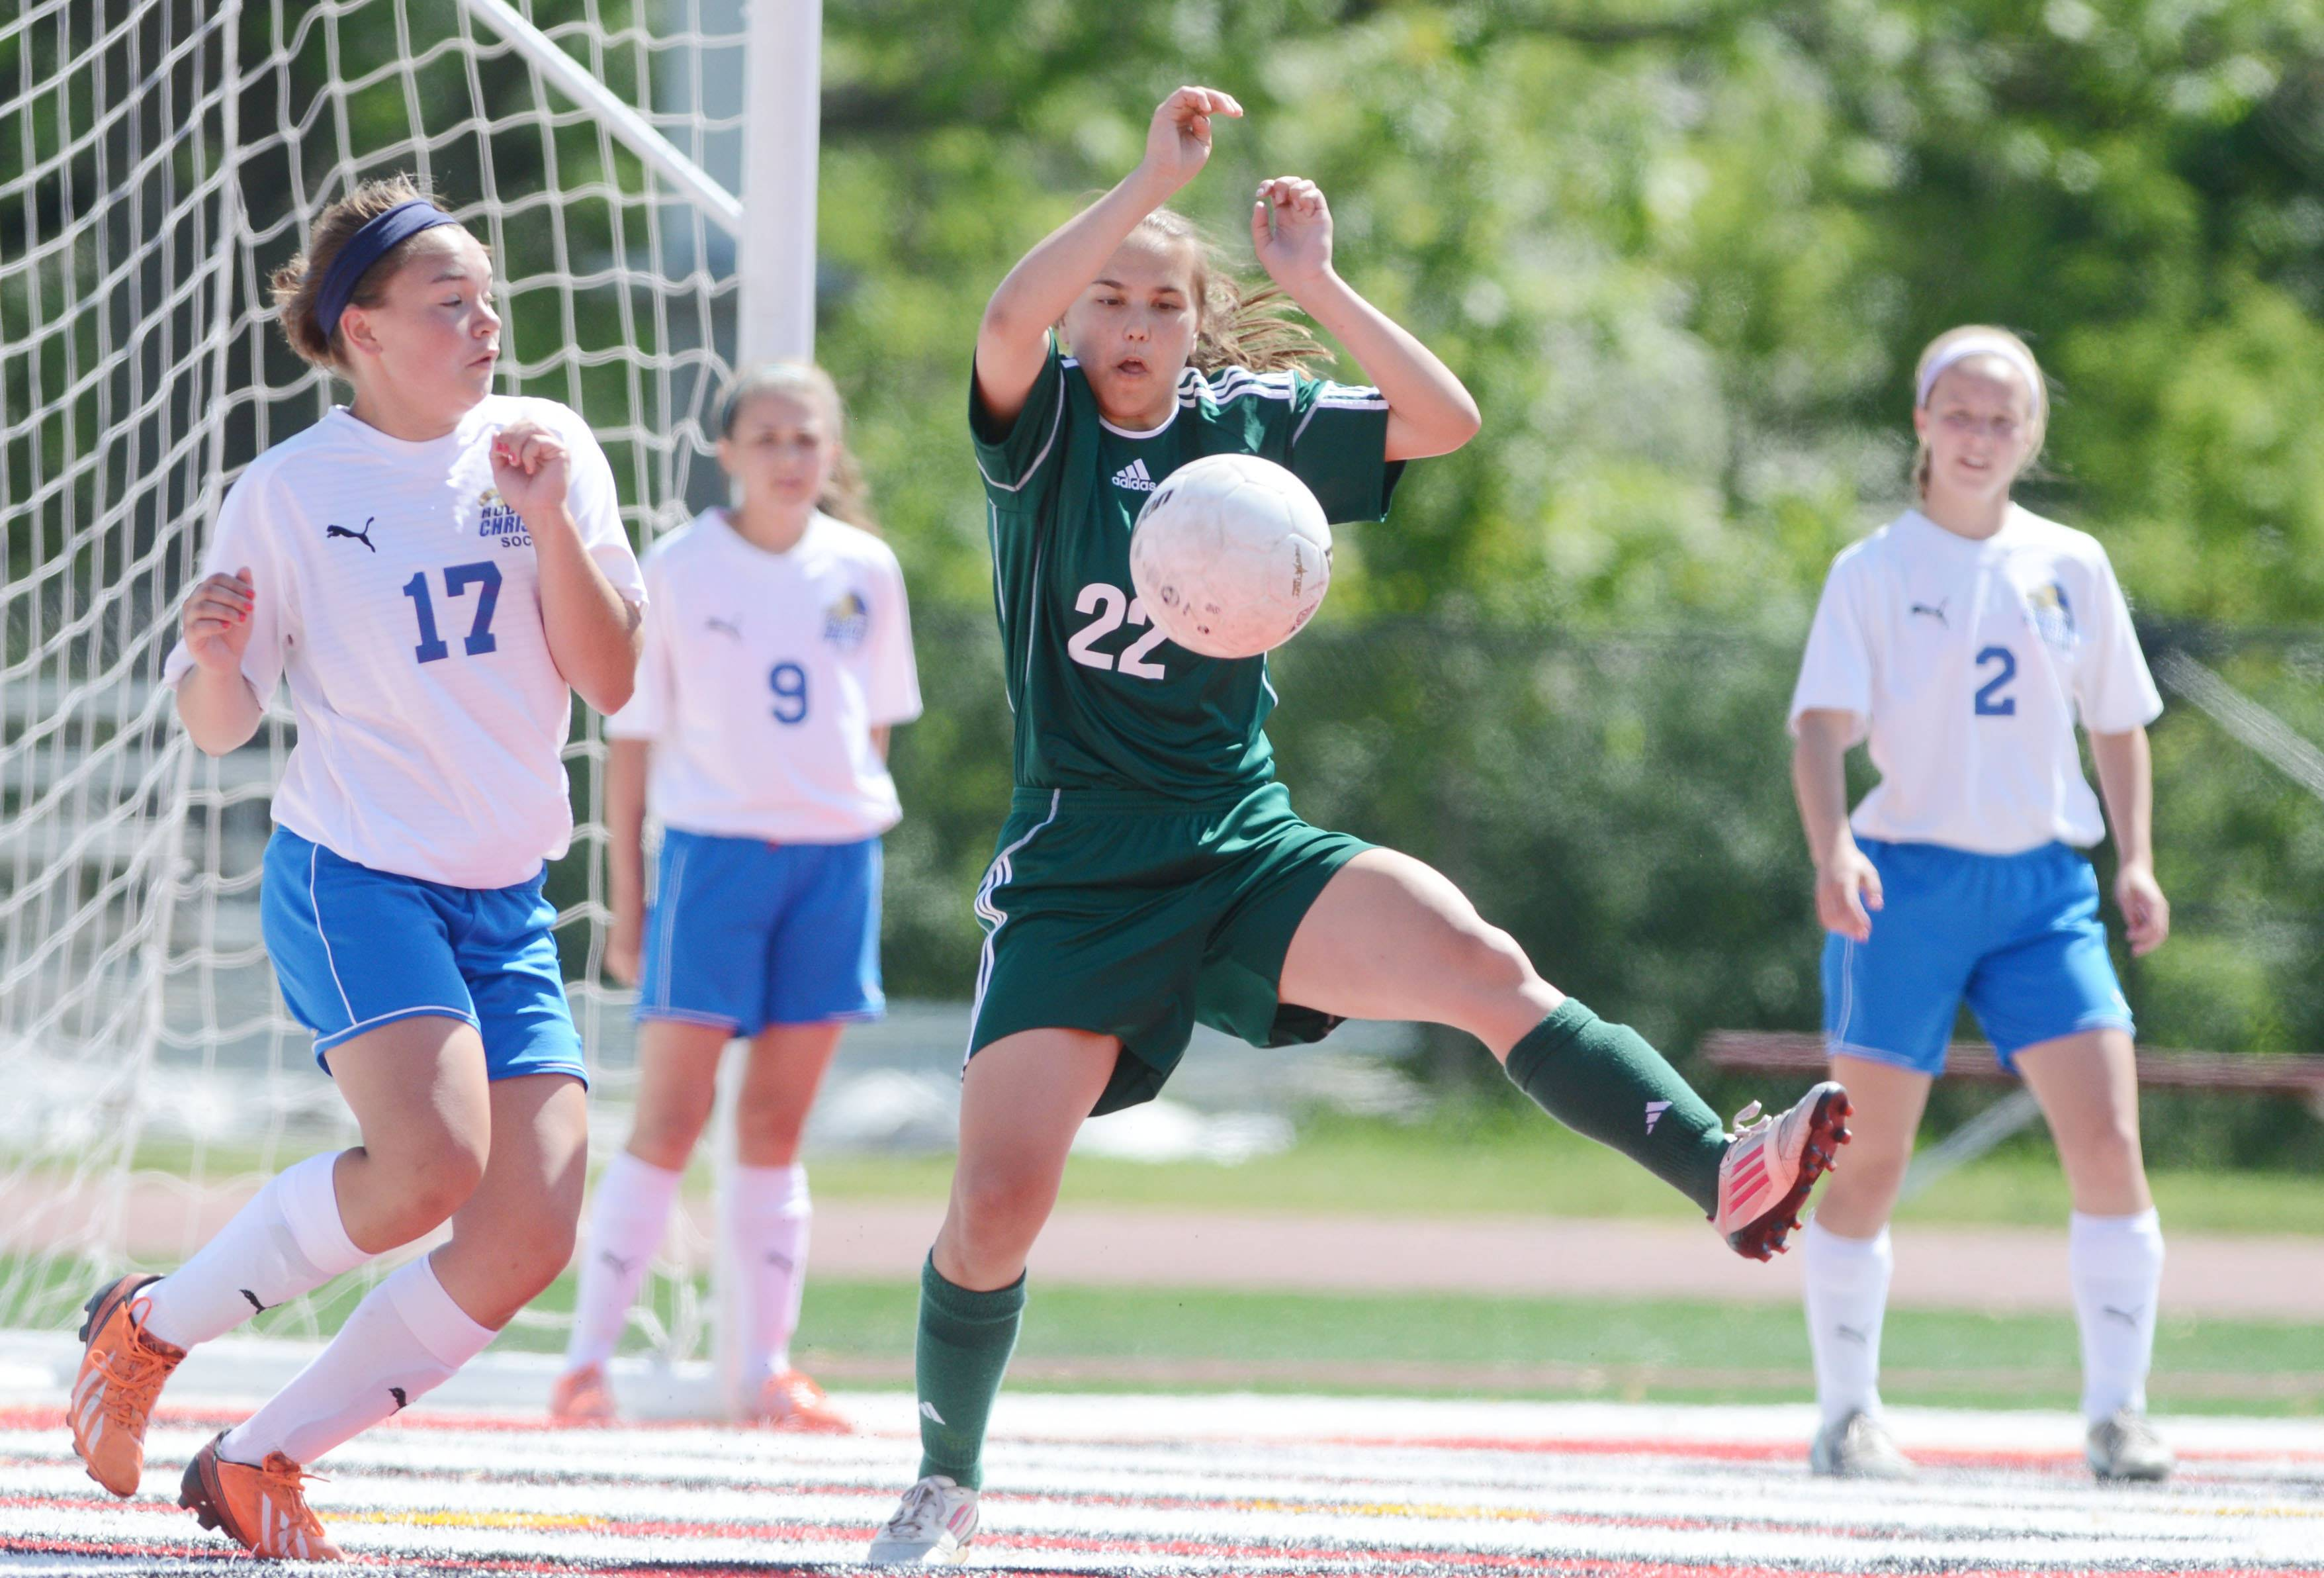 Maddie Spagnola of St. Edward controls the ball during the Class 1A state girls soccer third place game Saturday in Naperville.